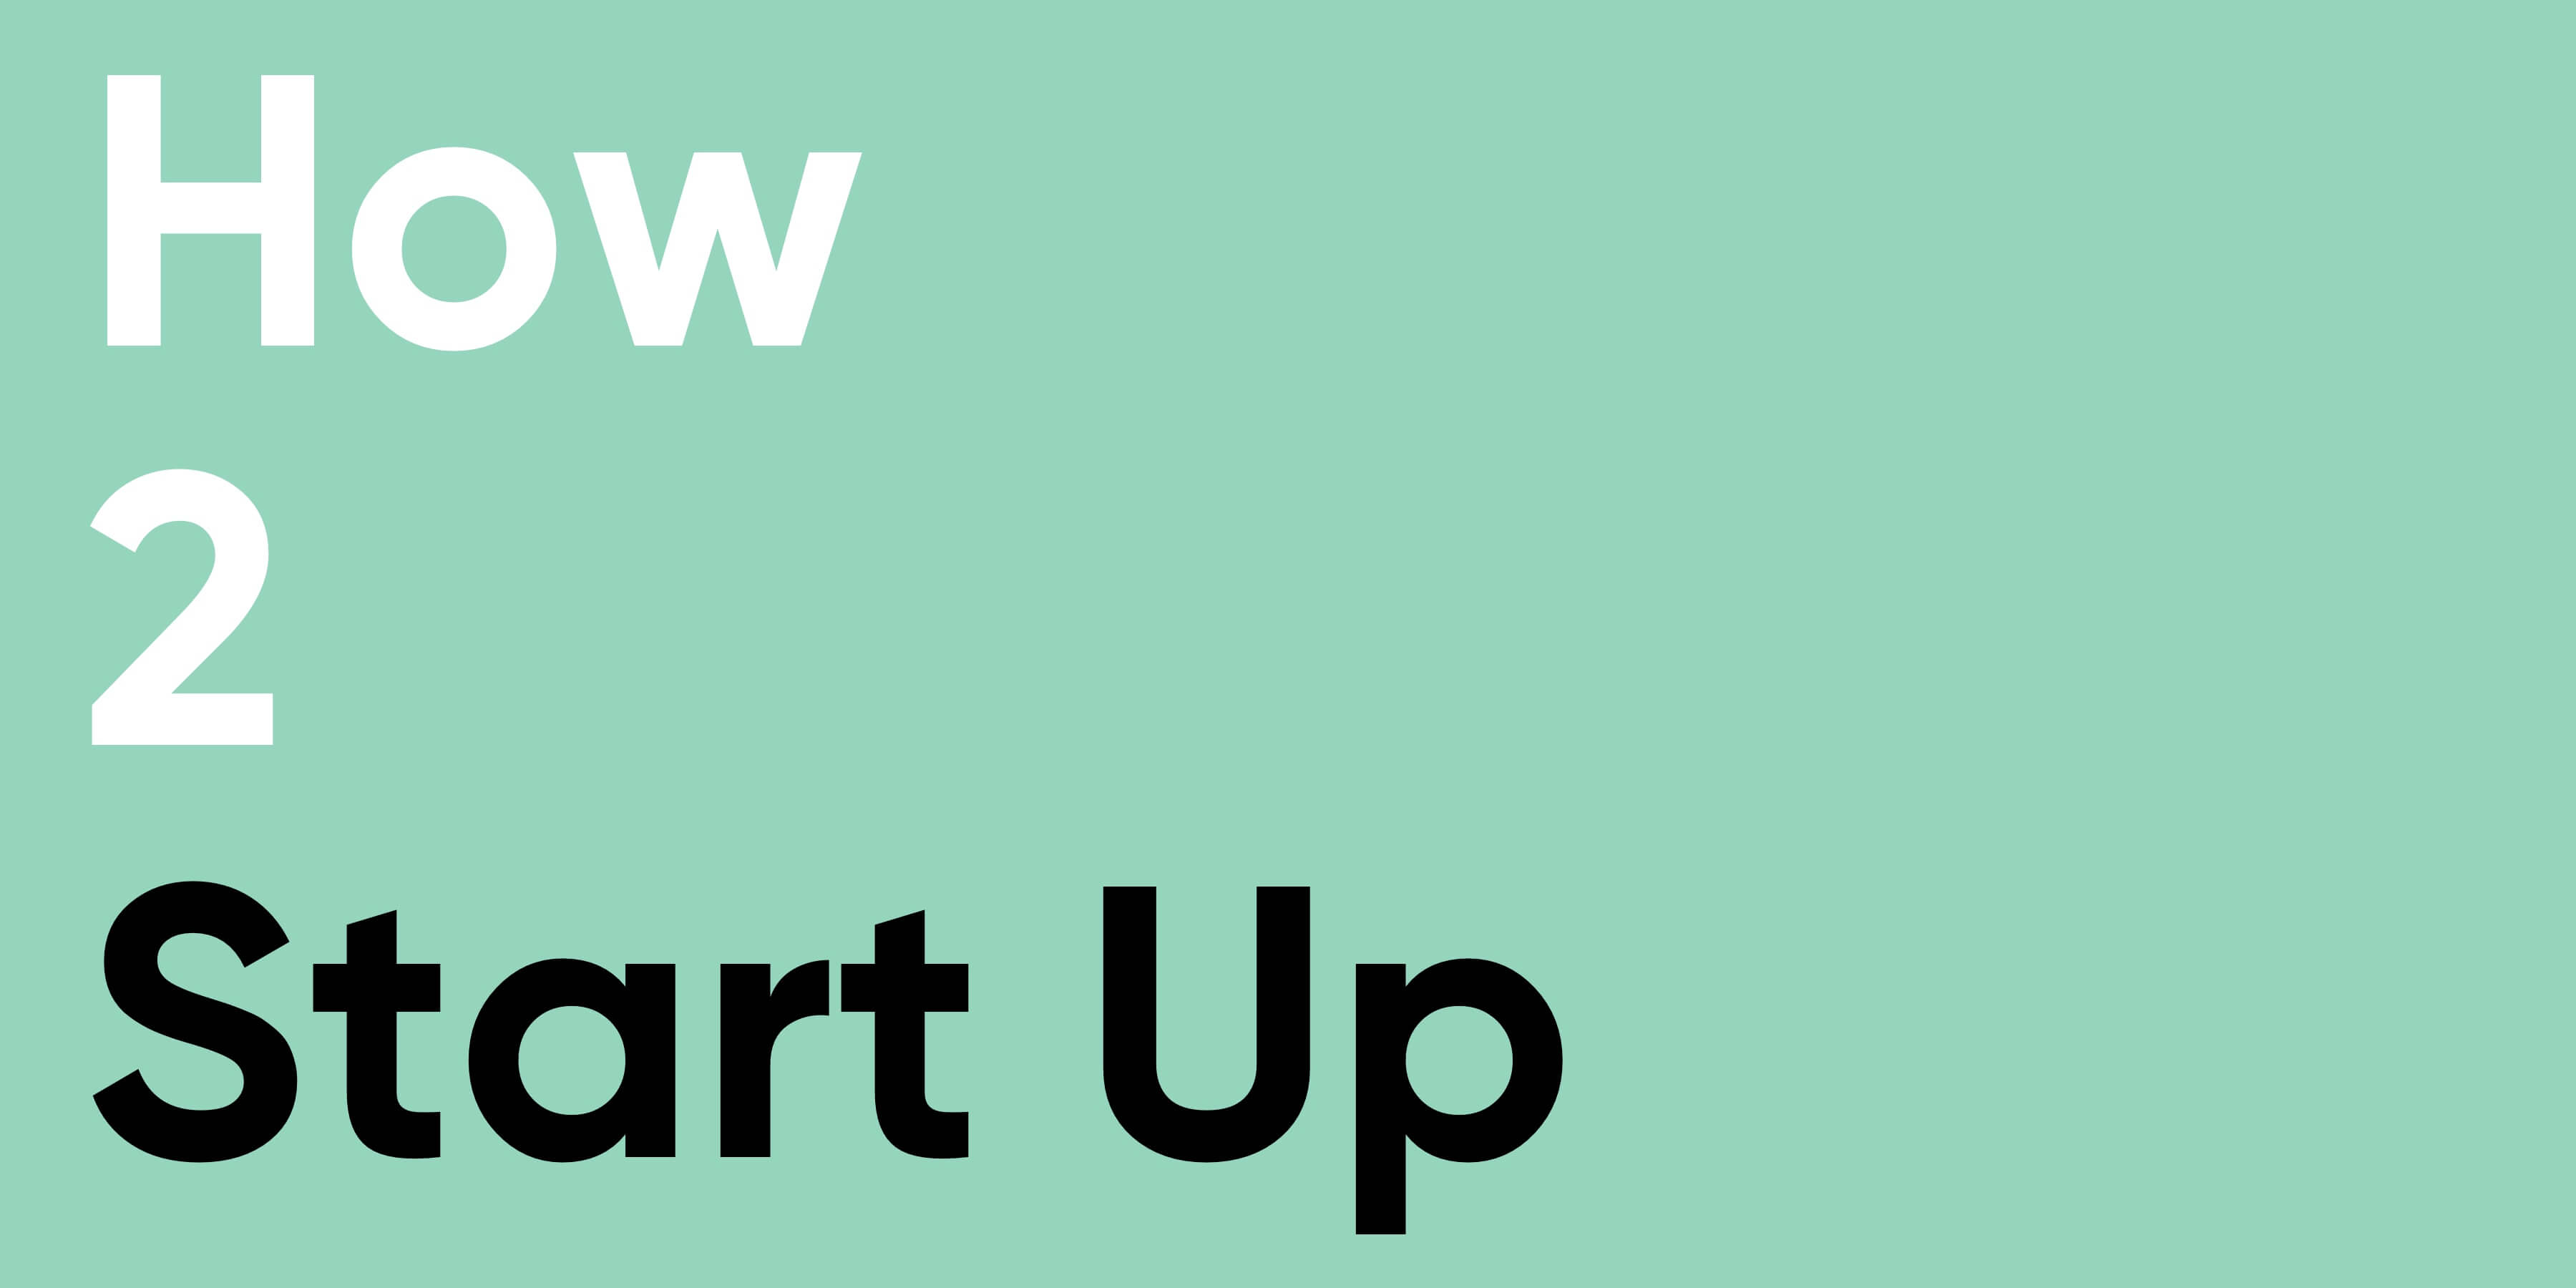 How to start a Startup - 4 Tipps